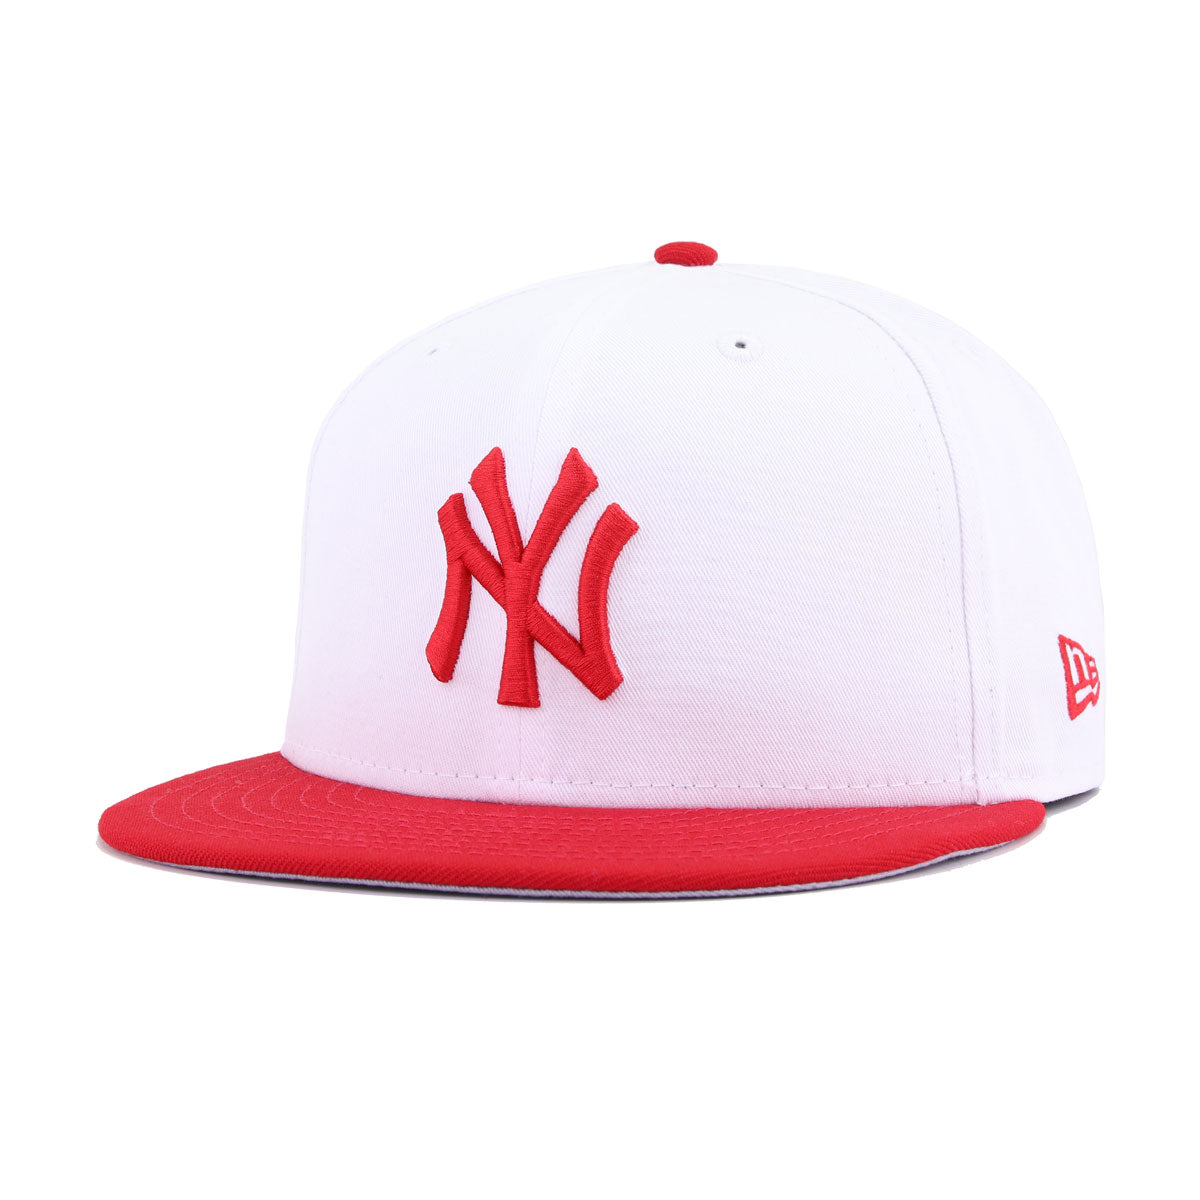 New York Yankees White Twill Scarlet New Era 9Fifty Snapback